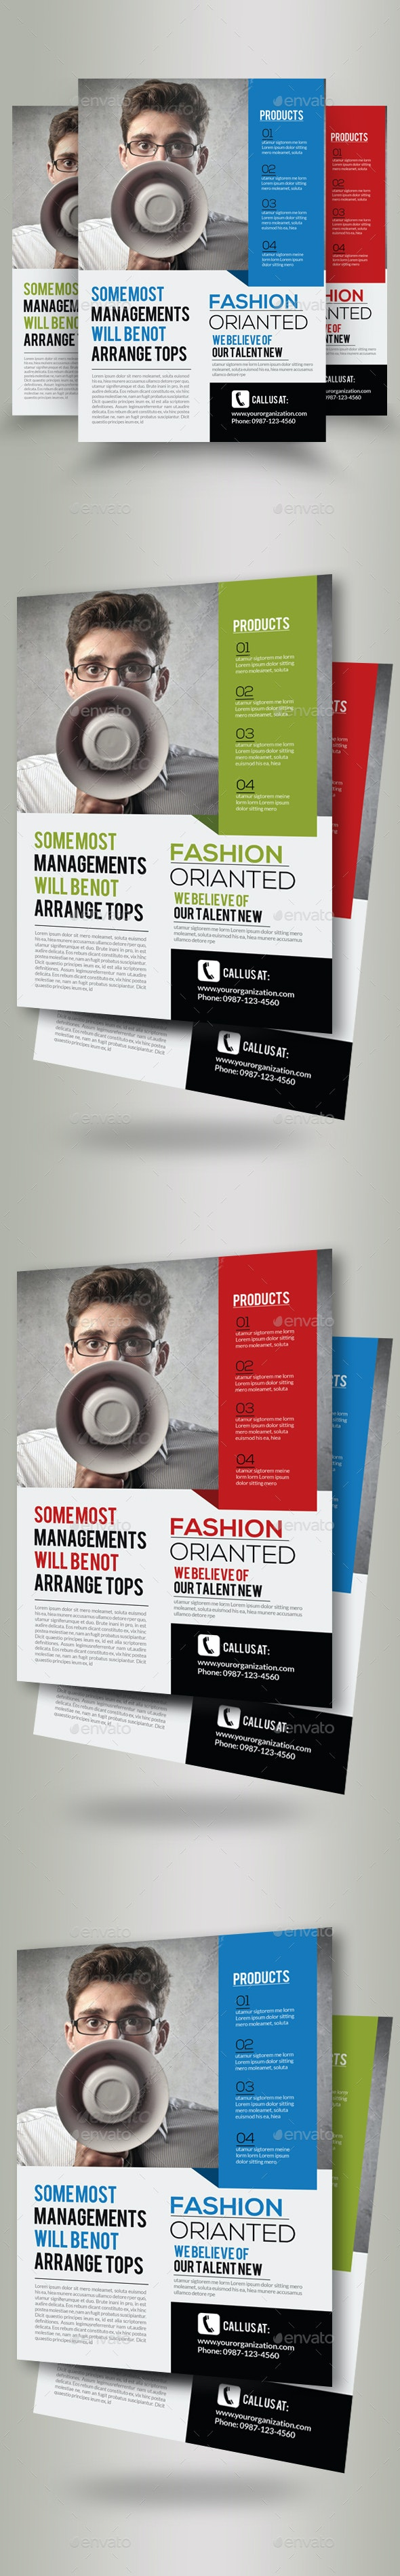 Business Marketing Consultant Flyers - Corporate Flyers